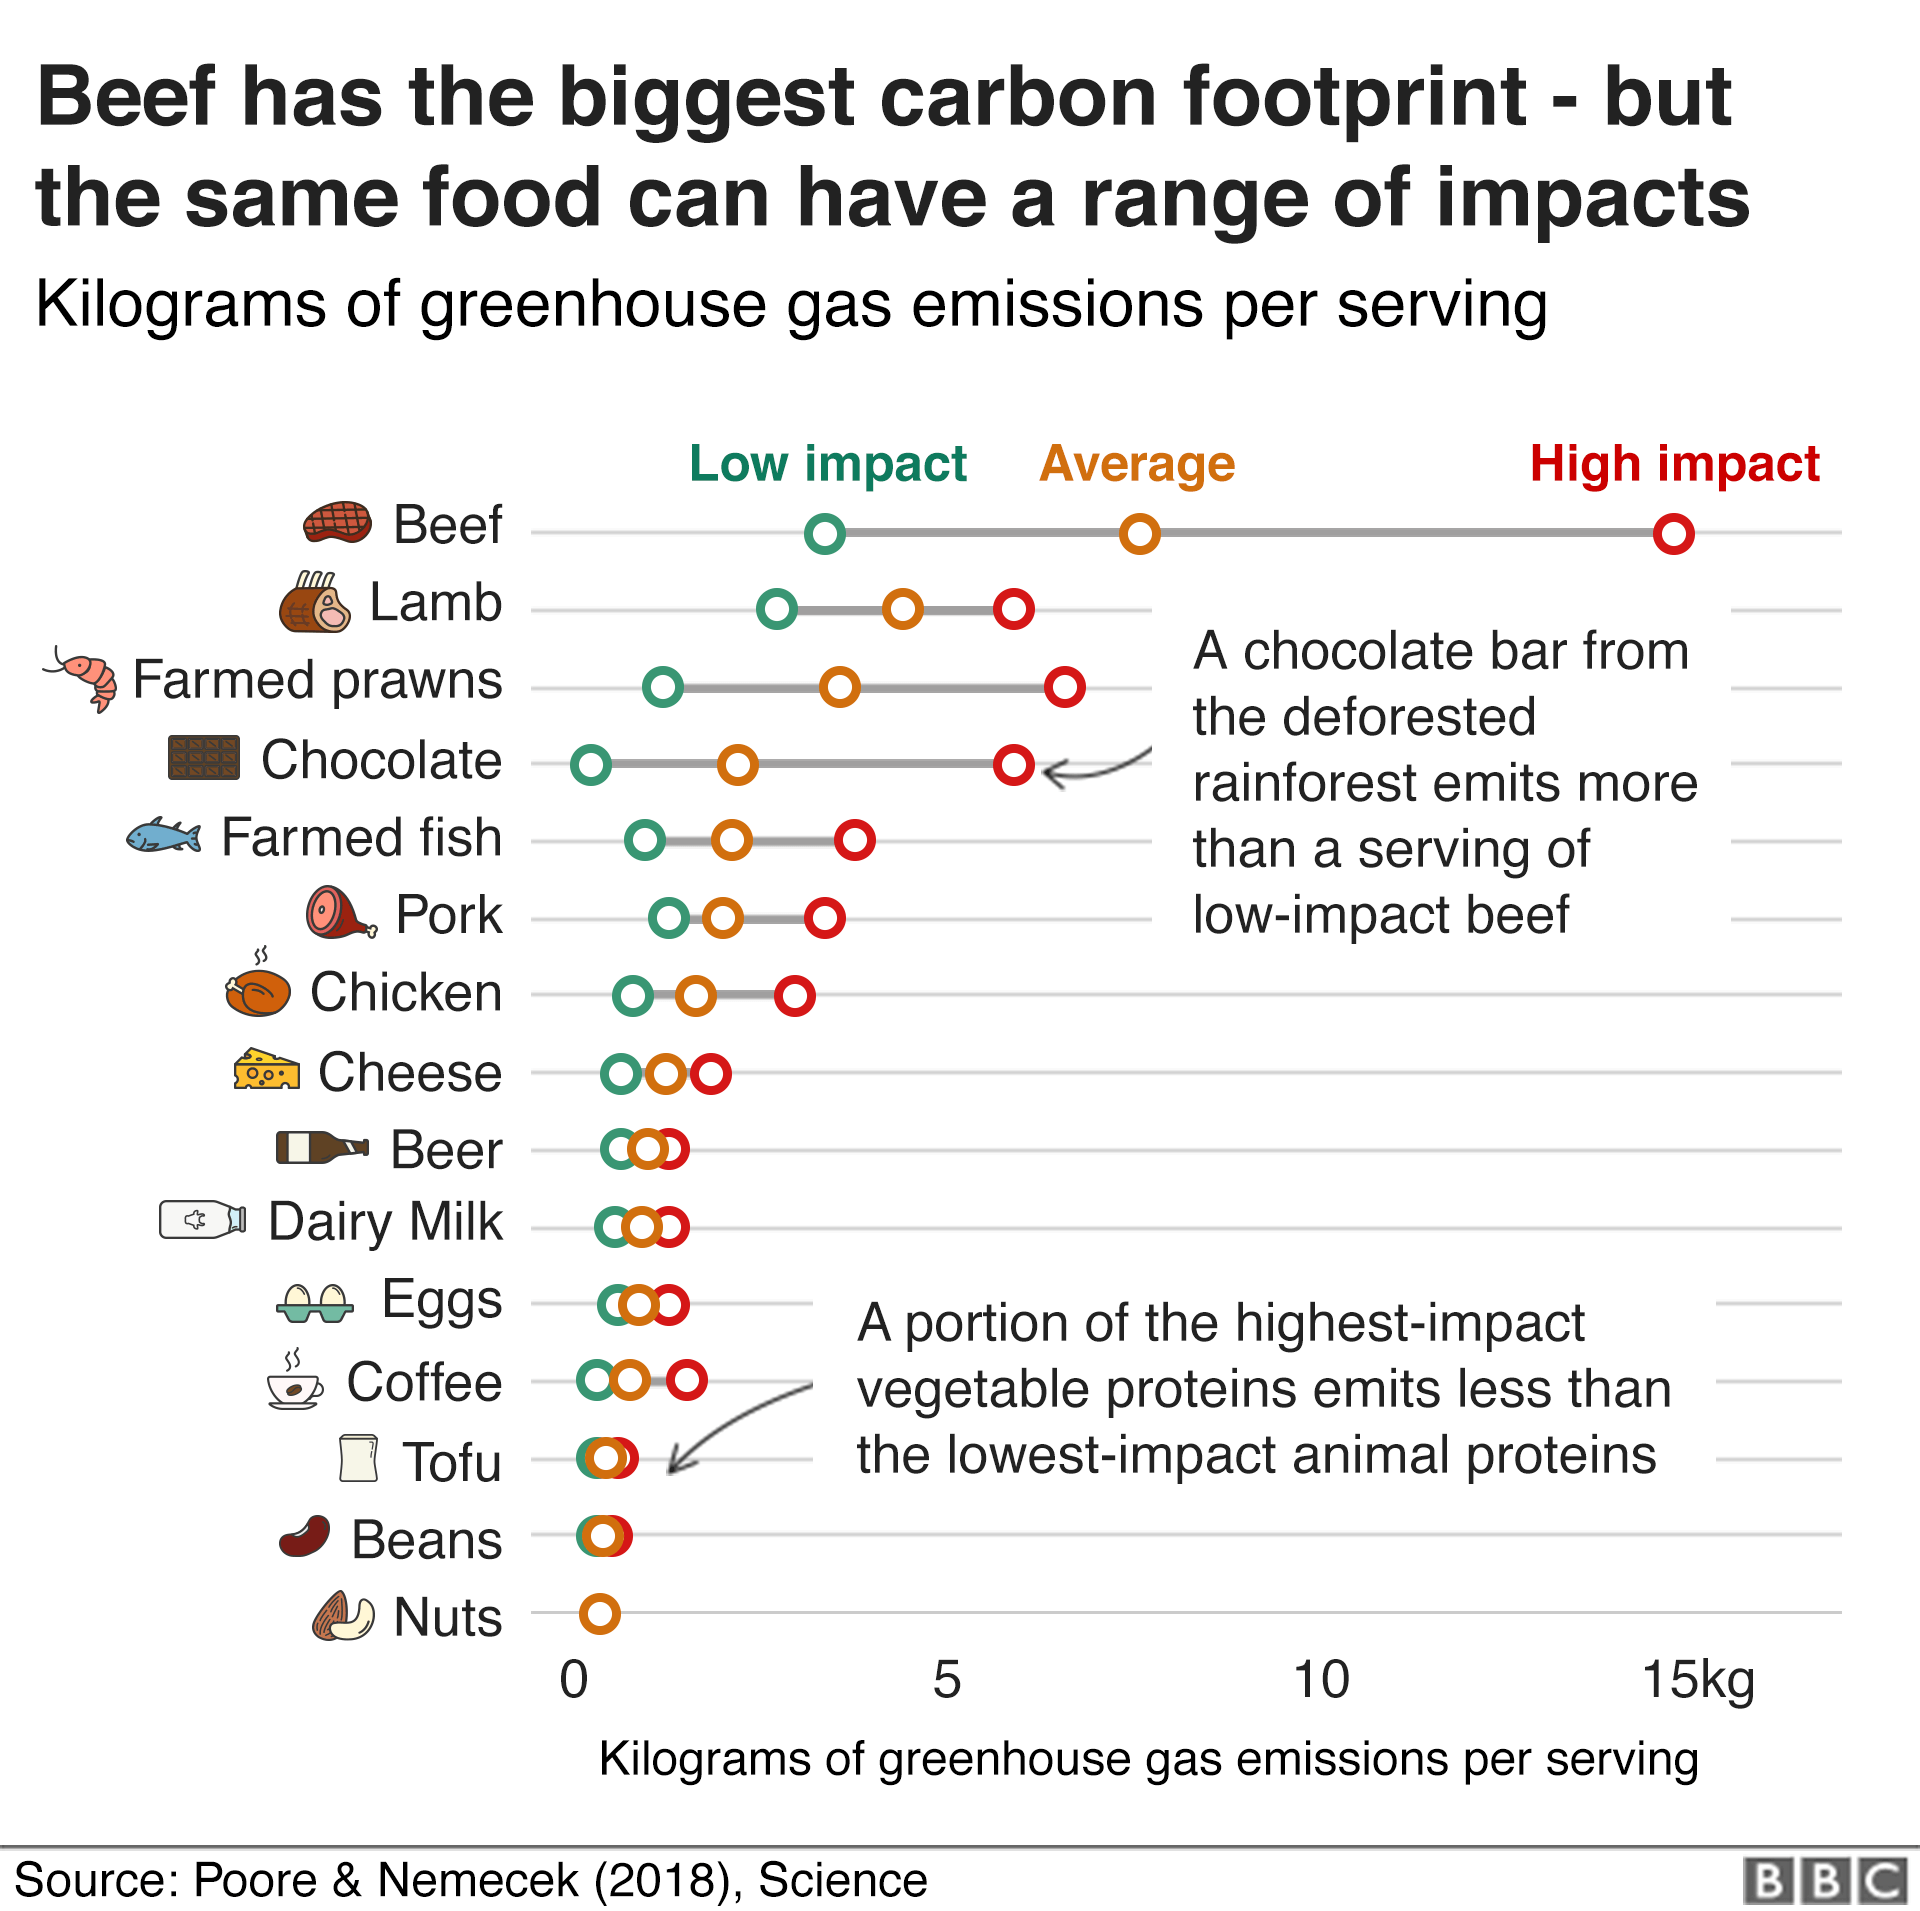 Chart showing the climate impacts of different foods: Beef has the highest carbon footprint, but the same food can have very different impacts